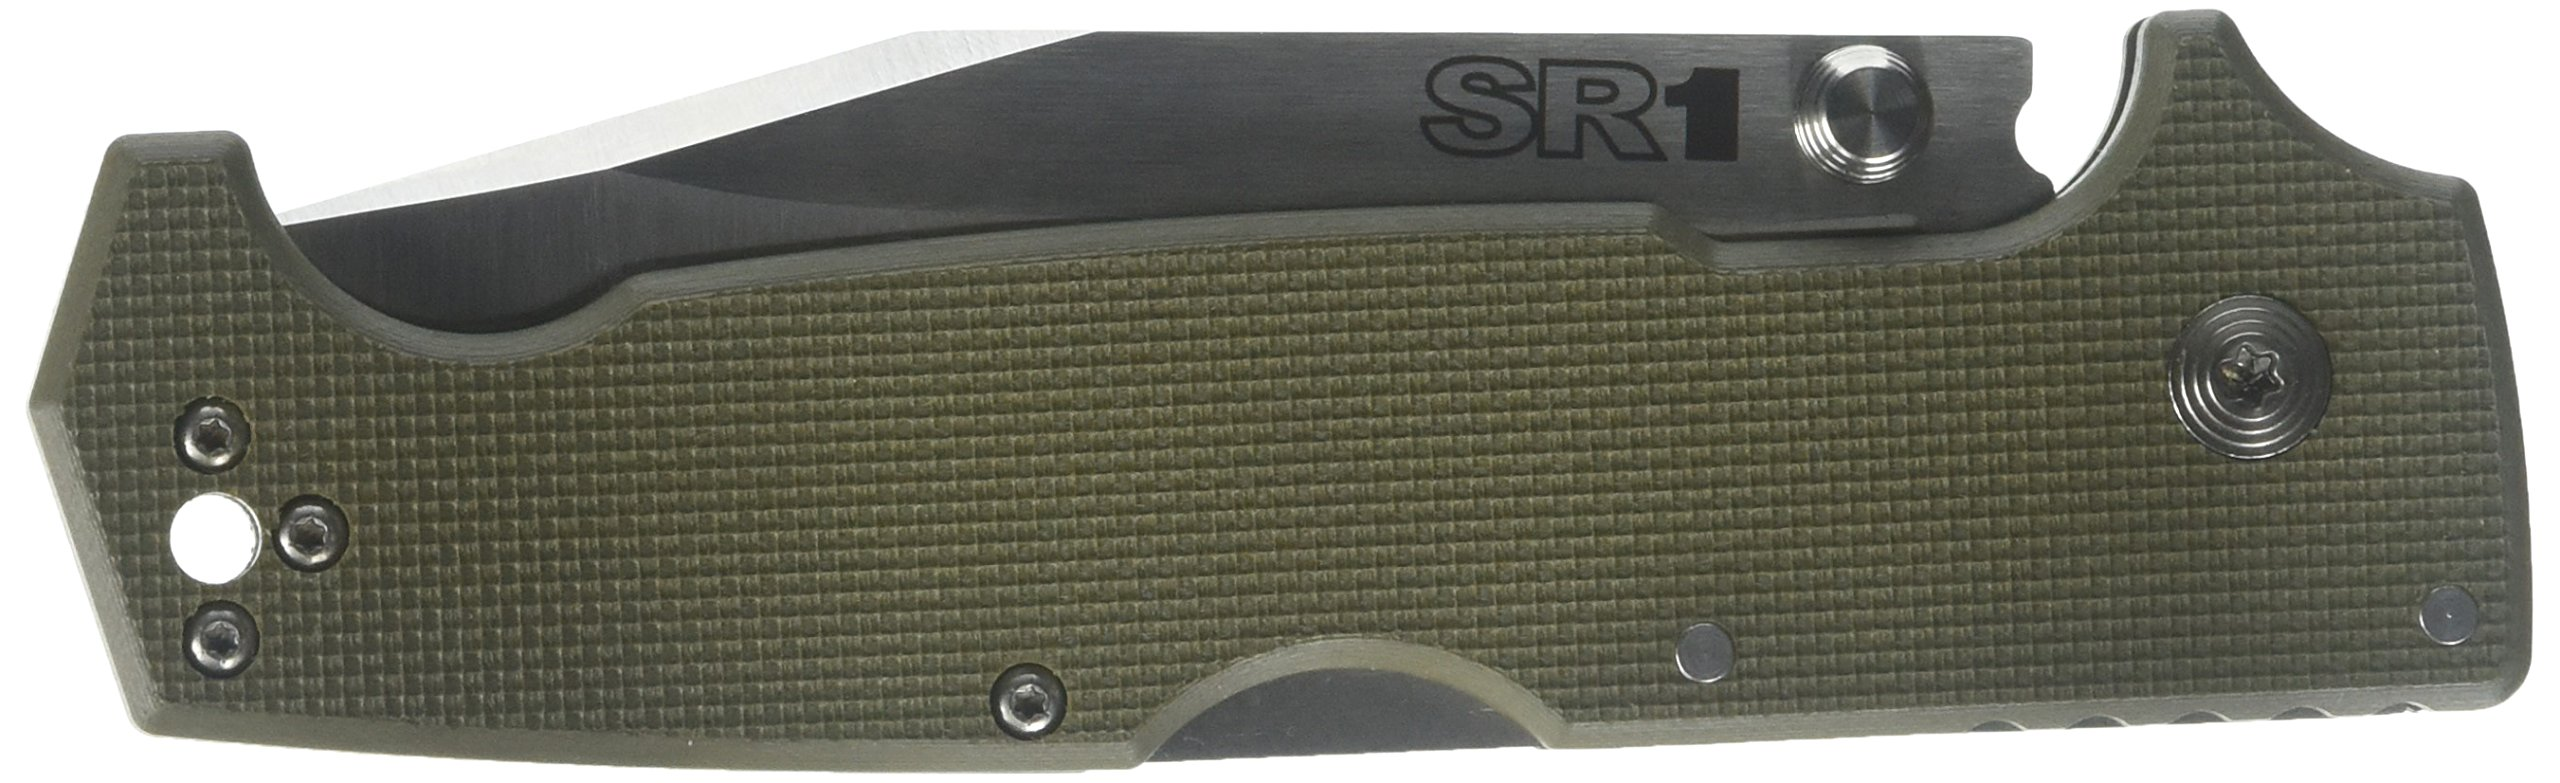 Cold Steel SR1 Knife, OD Green, 4-1/2'' by Cold Steel